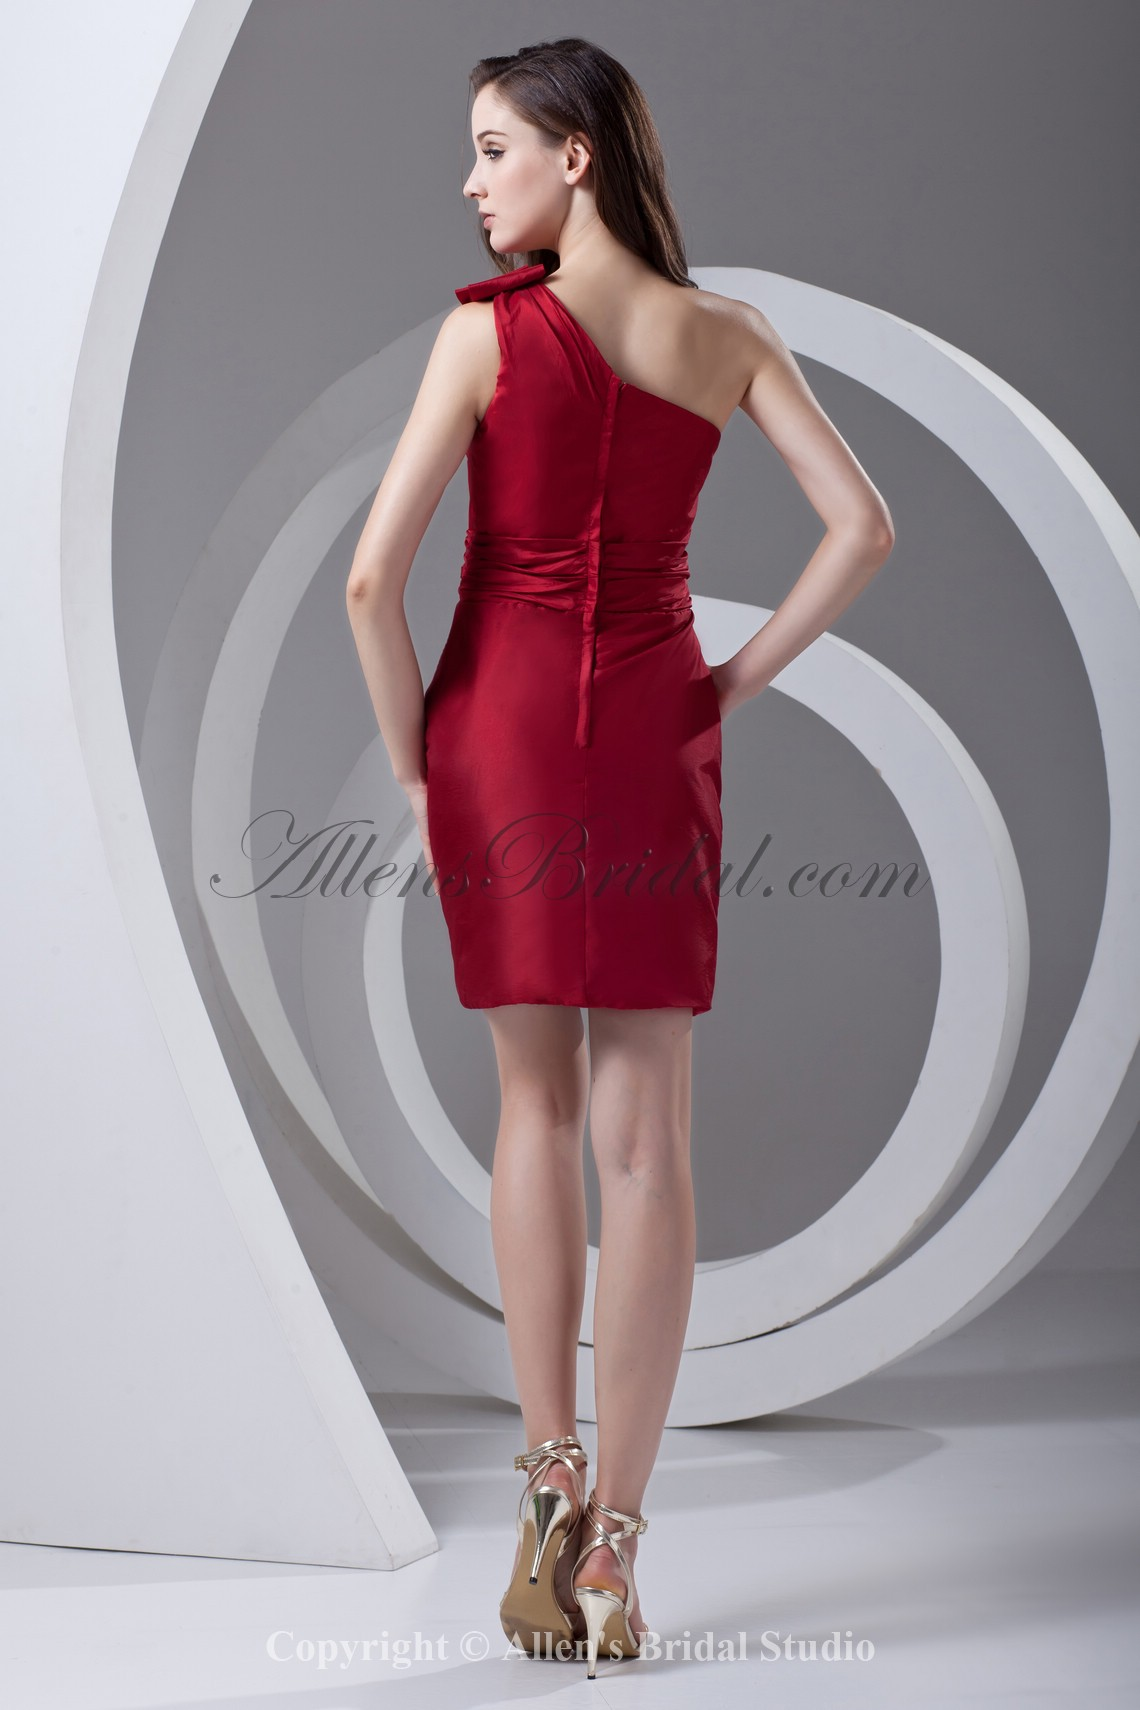 /360-2882/taffeta-one-shoulder-neckline-sheath-knee-length-flower-cocktail-dress.jpg